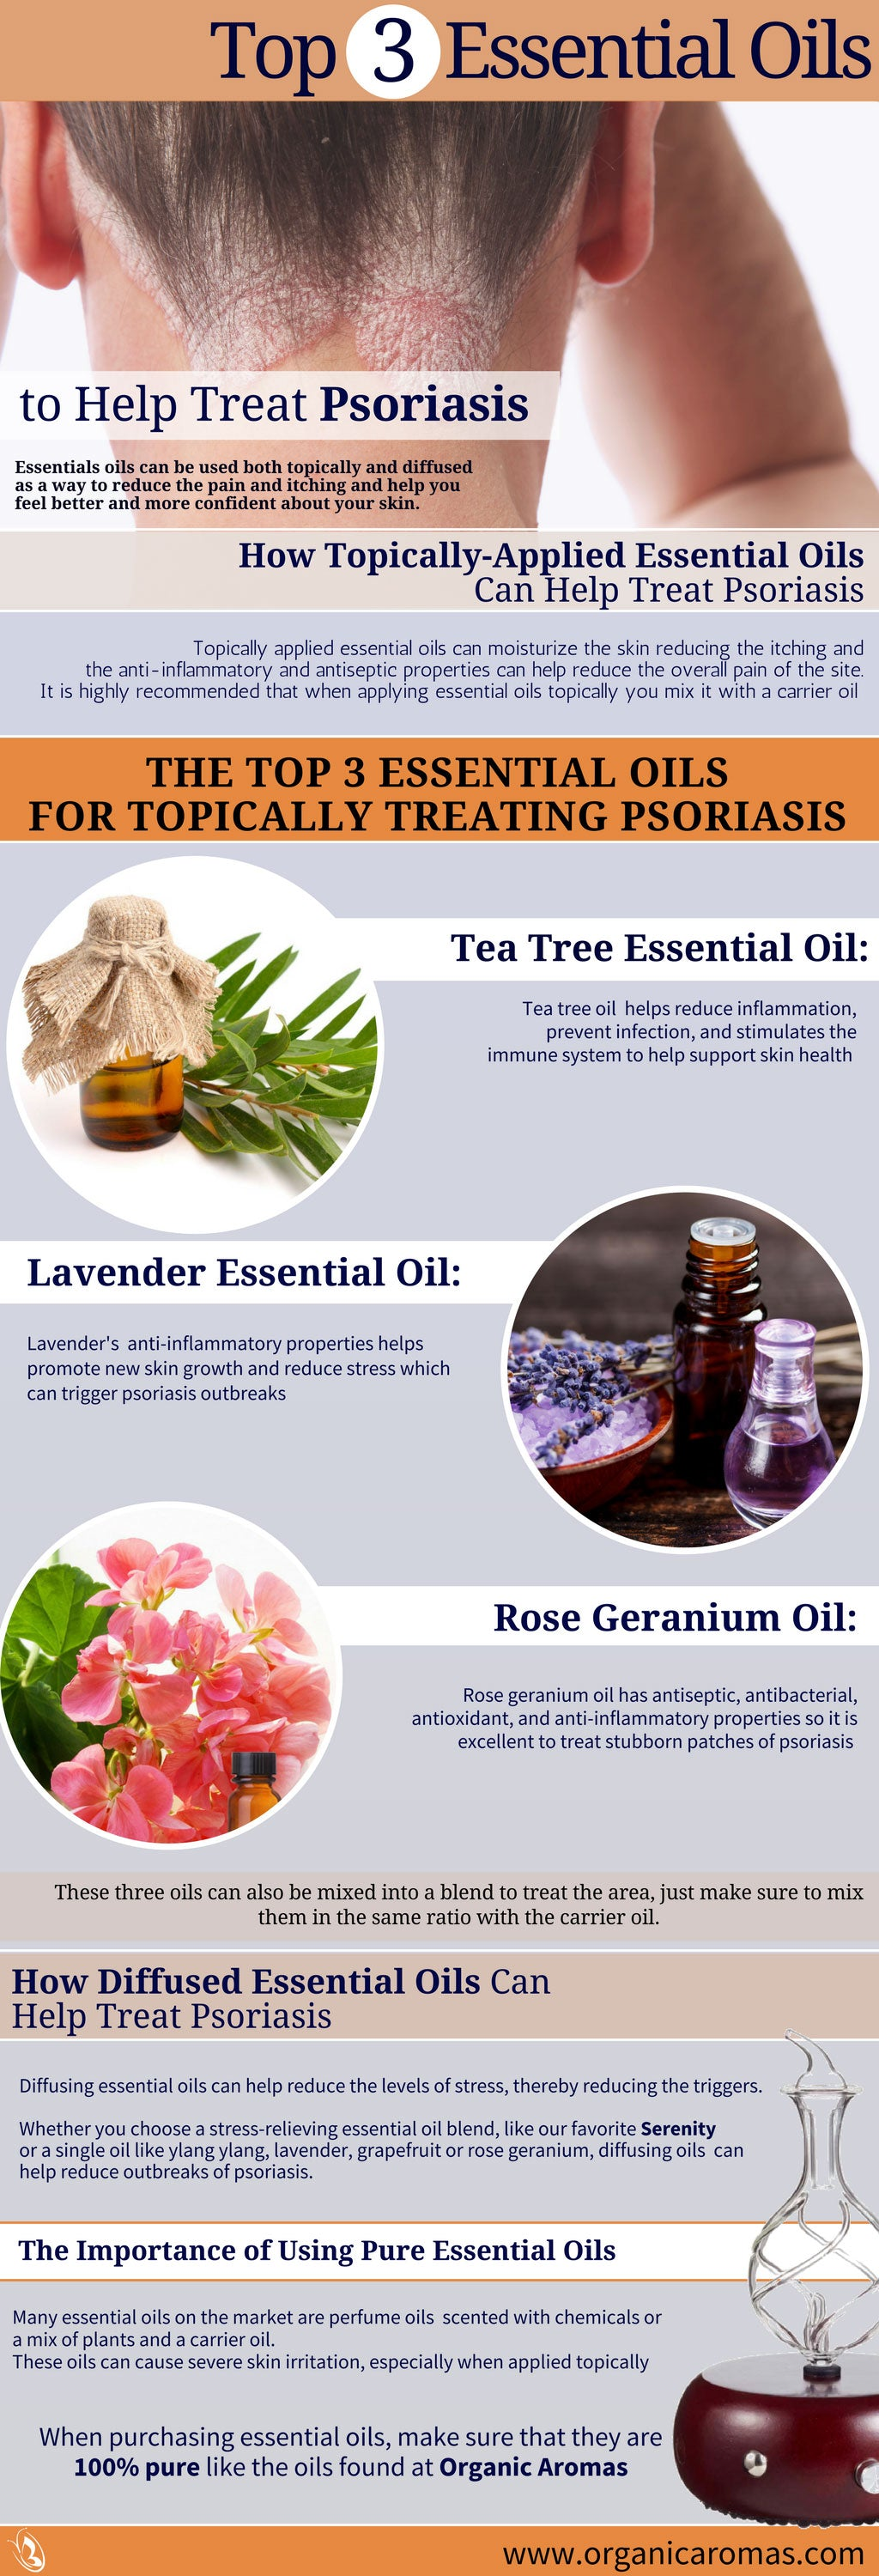 Top 3 Essential Oils to Help Treat Psoriasis - Organic Aromas